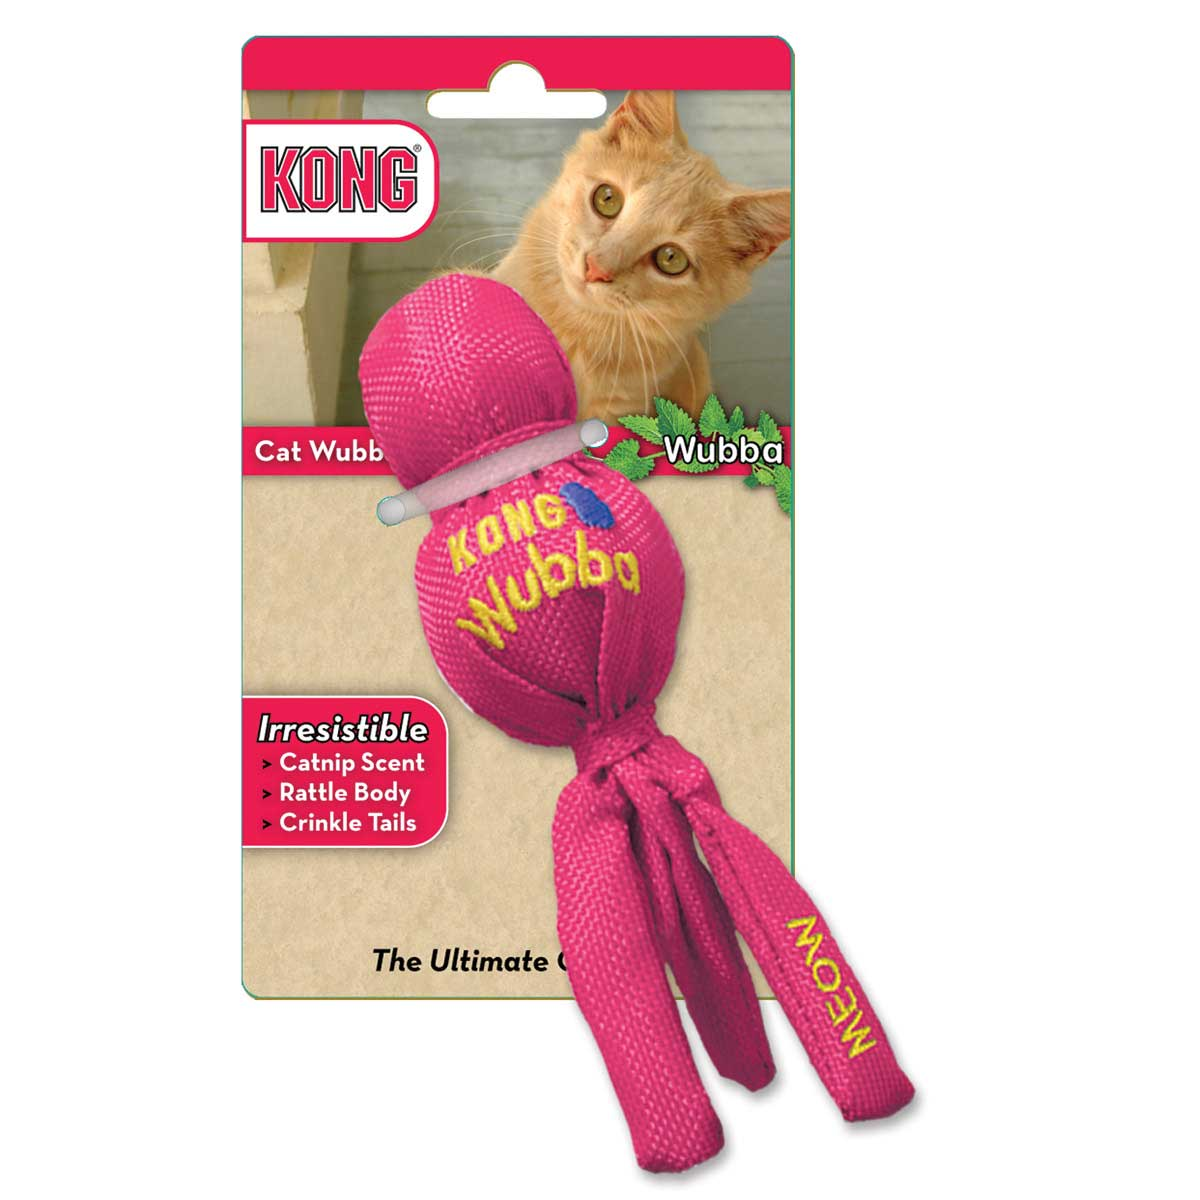 KONG Cat Wubba Toy for Cats